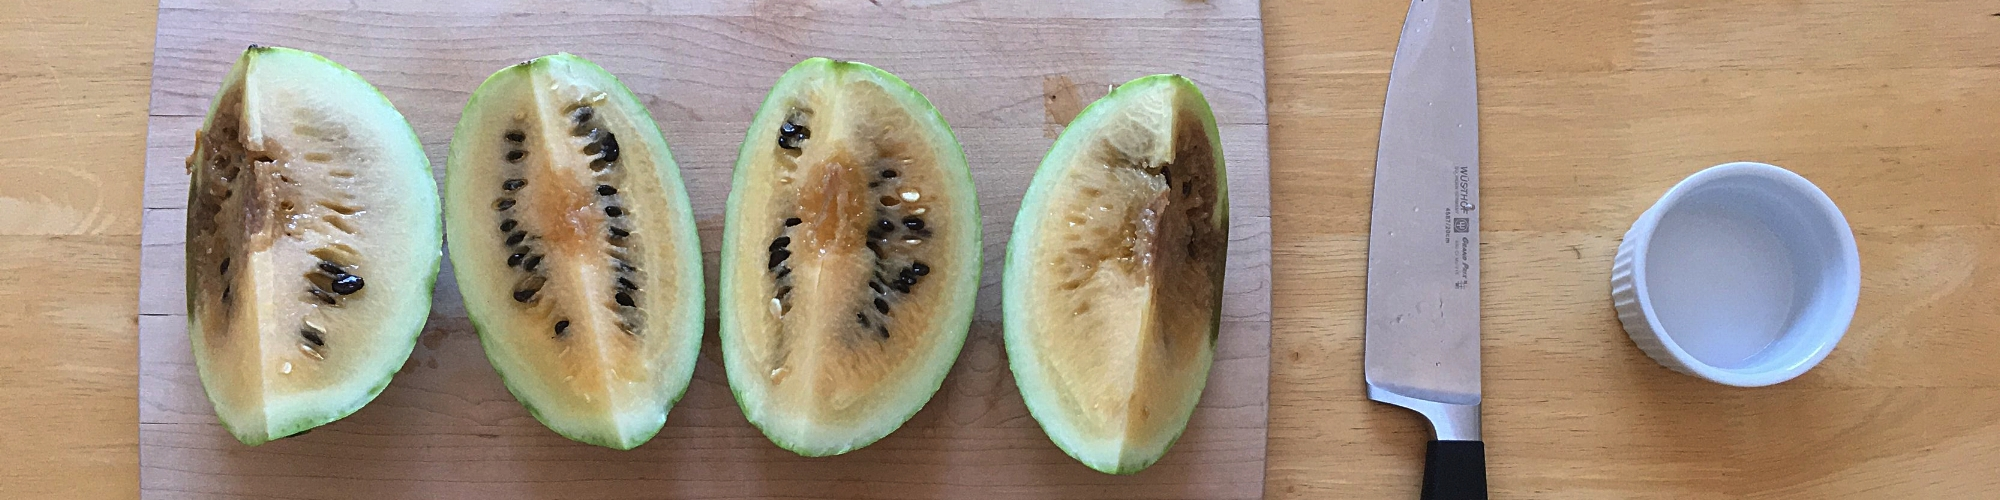 Melon dissection (1).JPG